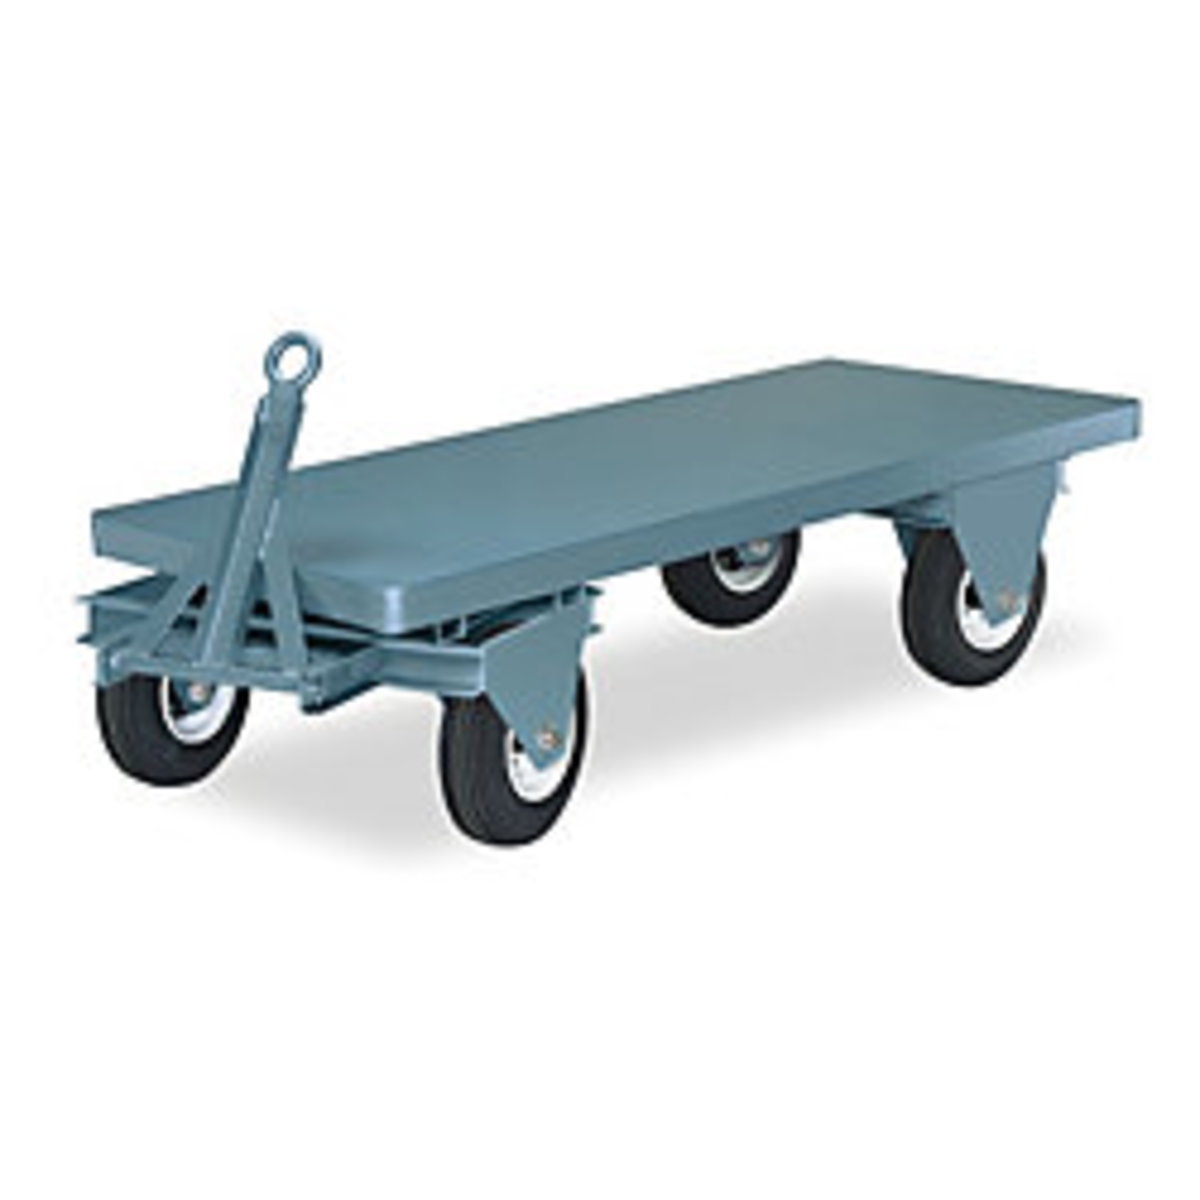 Platform Truck, Load Capacity 4500 Pounds, Deck Length 96 Inches, Deck Height 22 1/4 Inches, Deck Width 36 Inches, Platform Style Fifth Wheel Trailer, Wheel Pneumatic